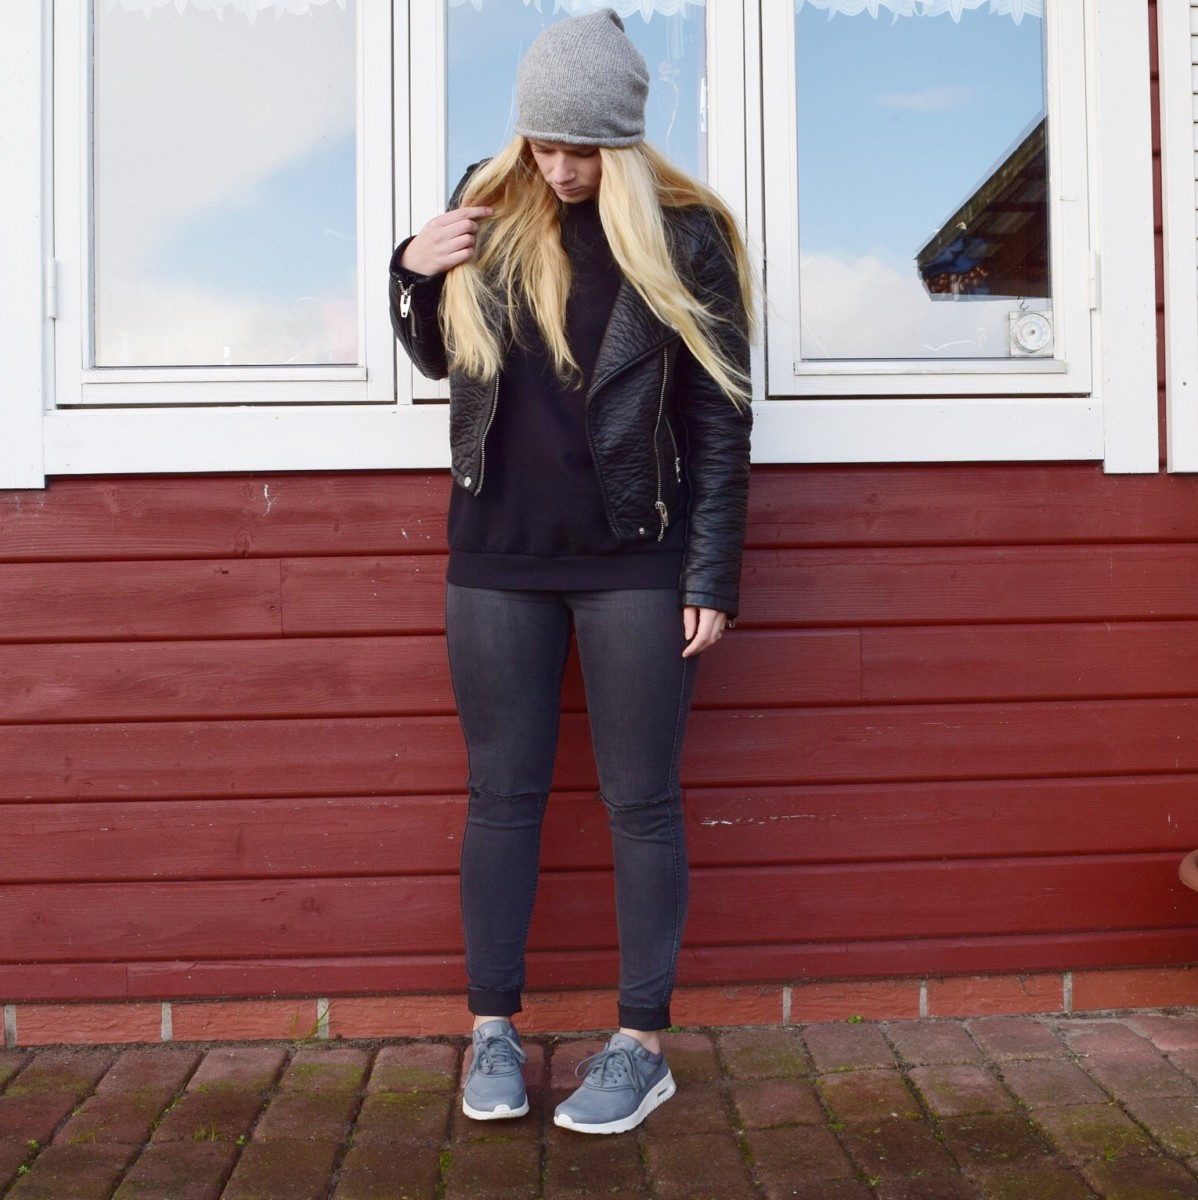 blonde-haare-ripped-jeans-schwarzer-pullover-lederjacke-swanted